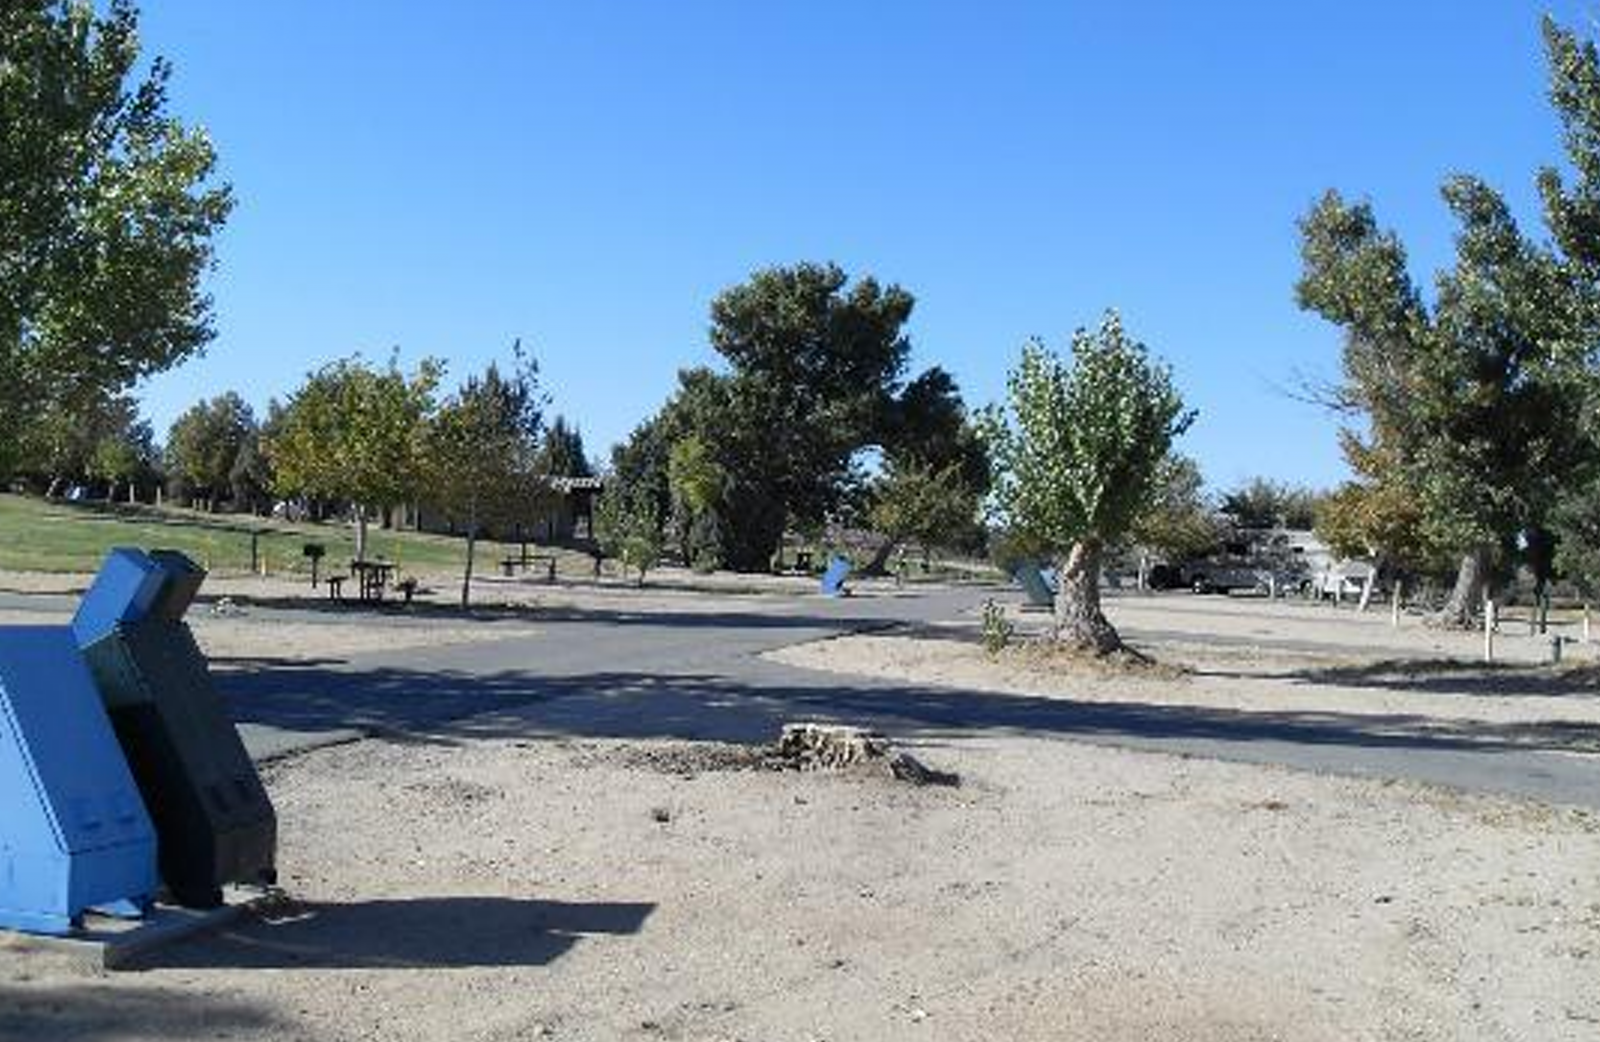 Empty RV camp site area with dump station receptacle.